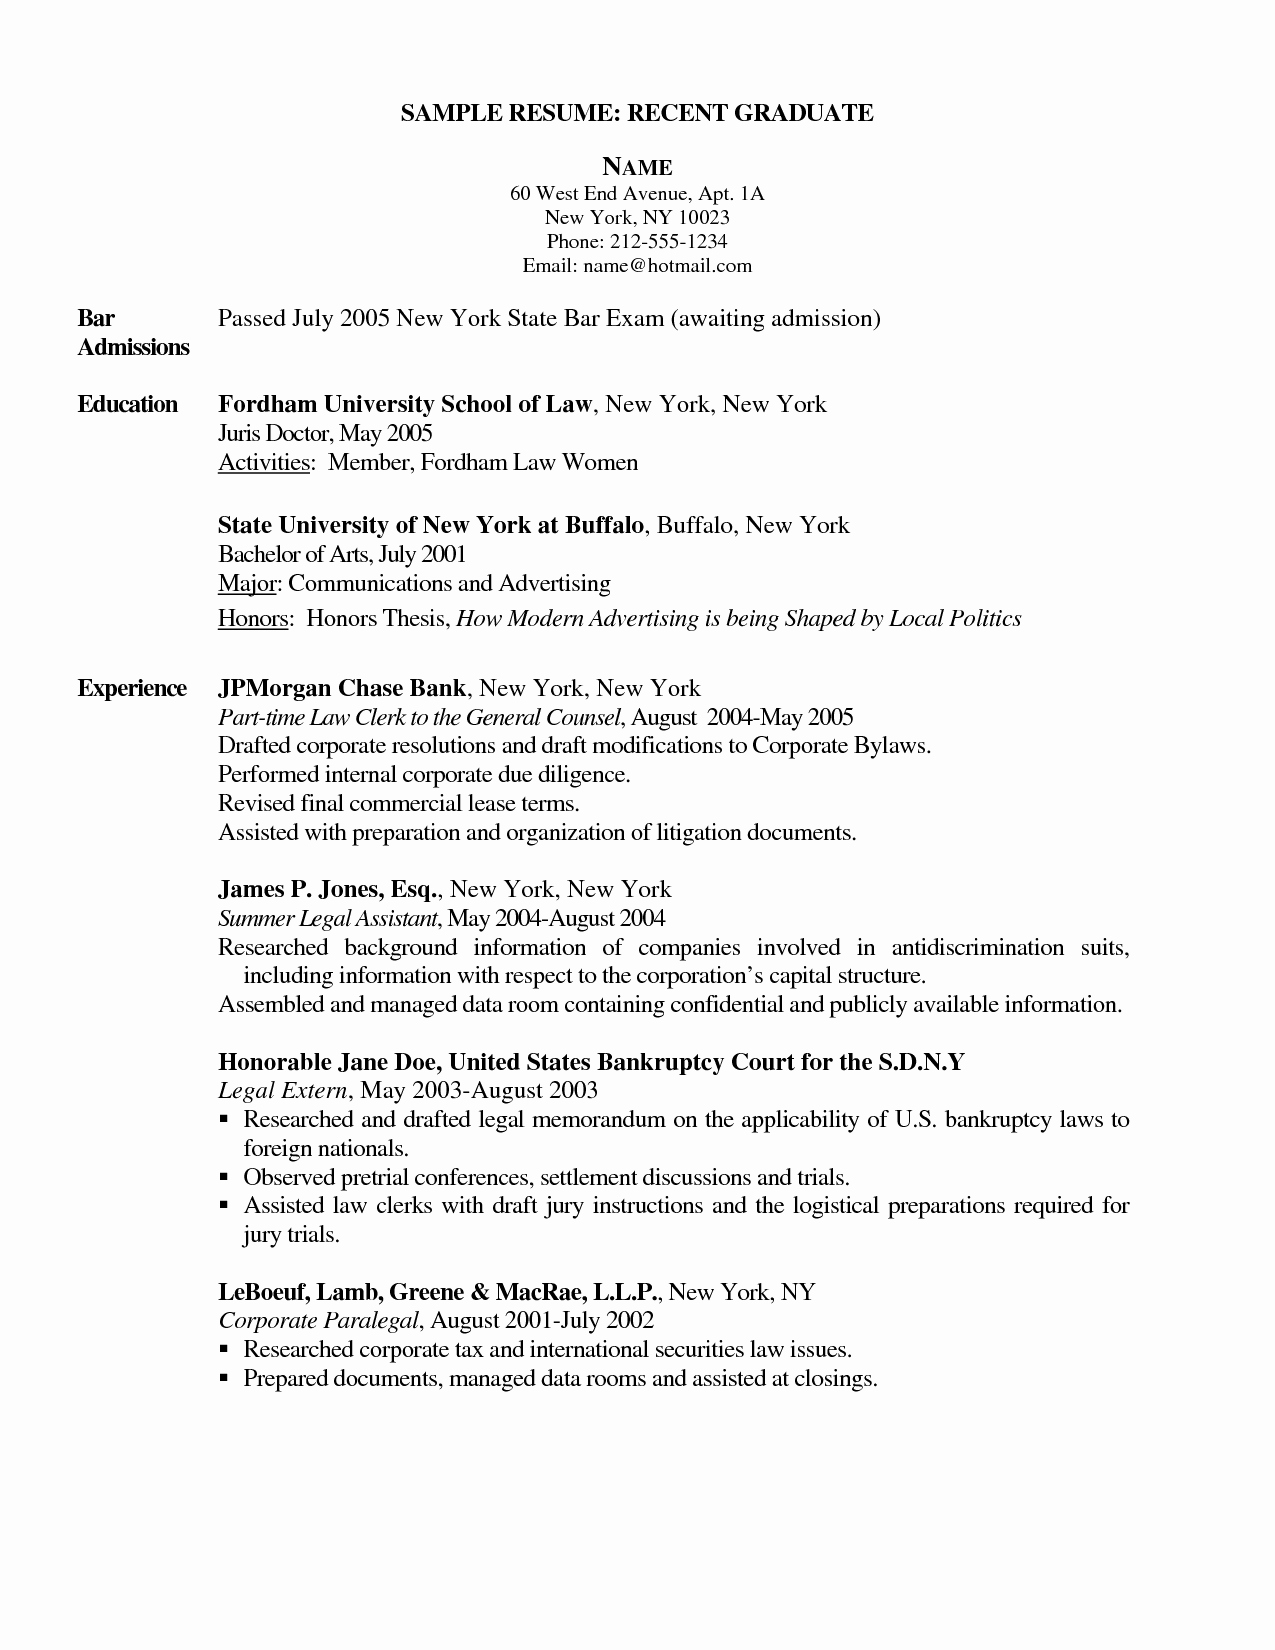 Resumes for Recent College Graduates Awesome Profile Resume Recent Graduate Sidemcicek